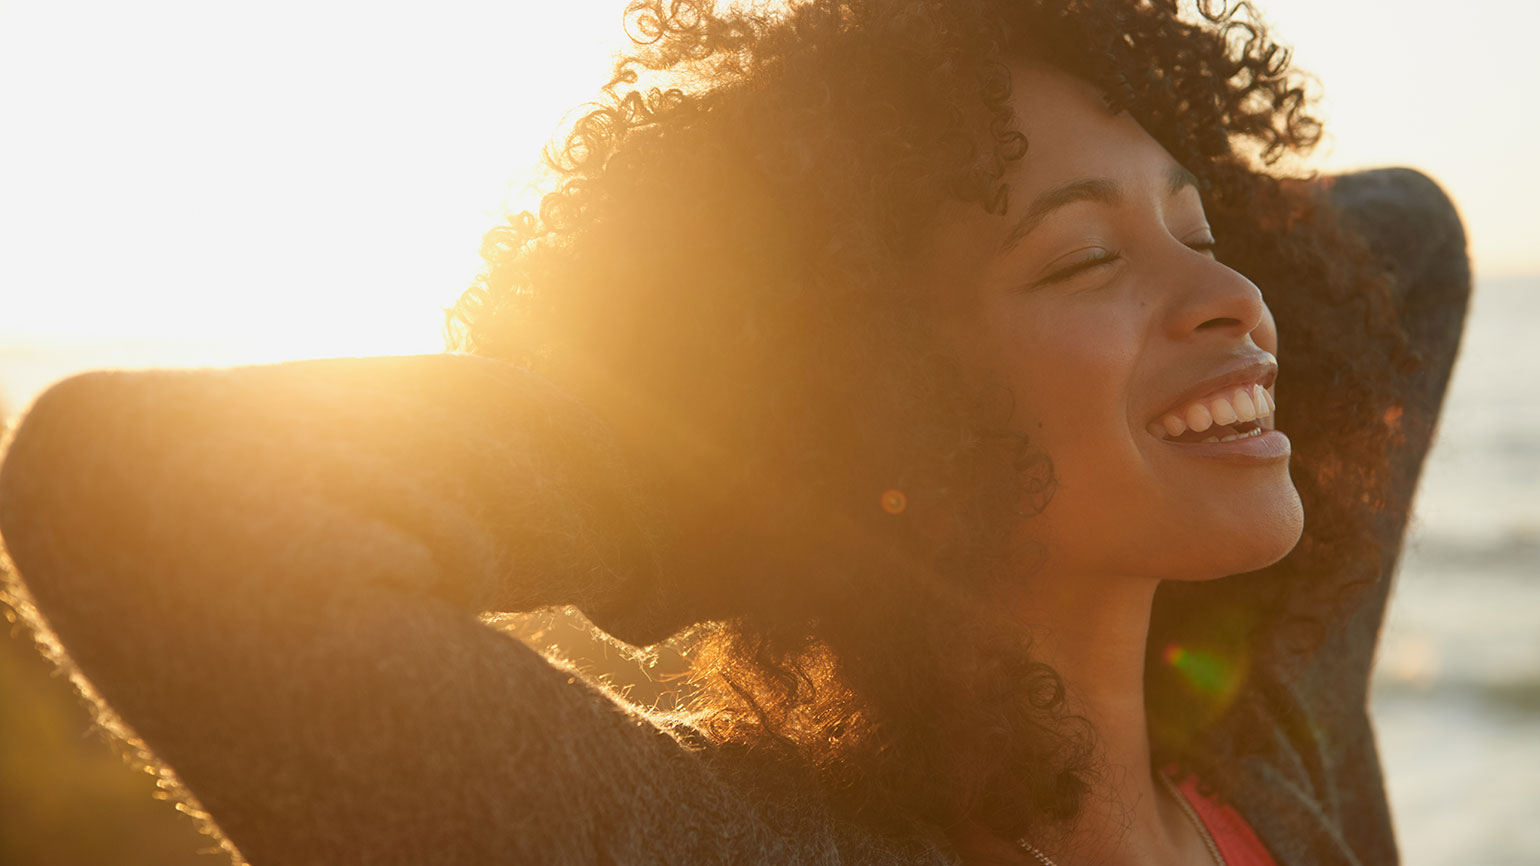 A young woman smiles contentedly on a bright sunny day